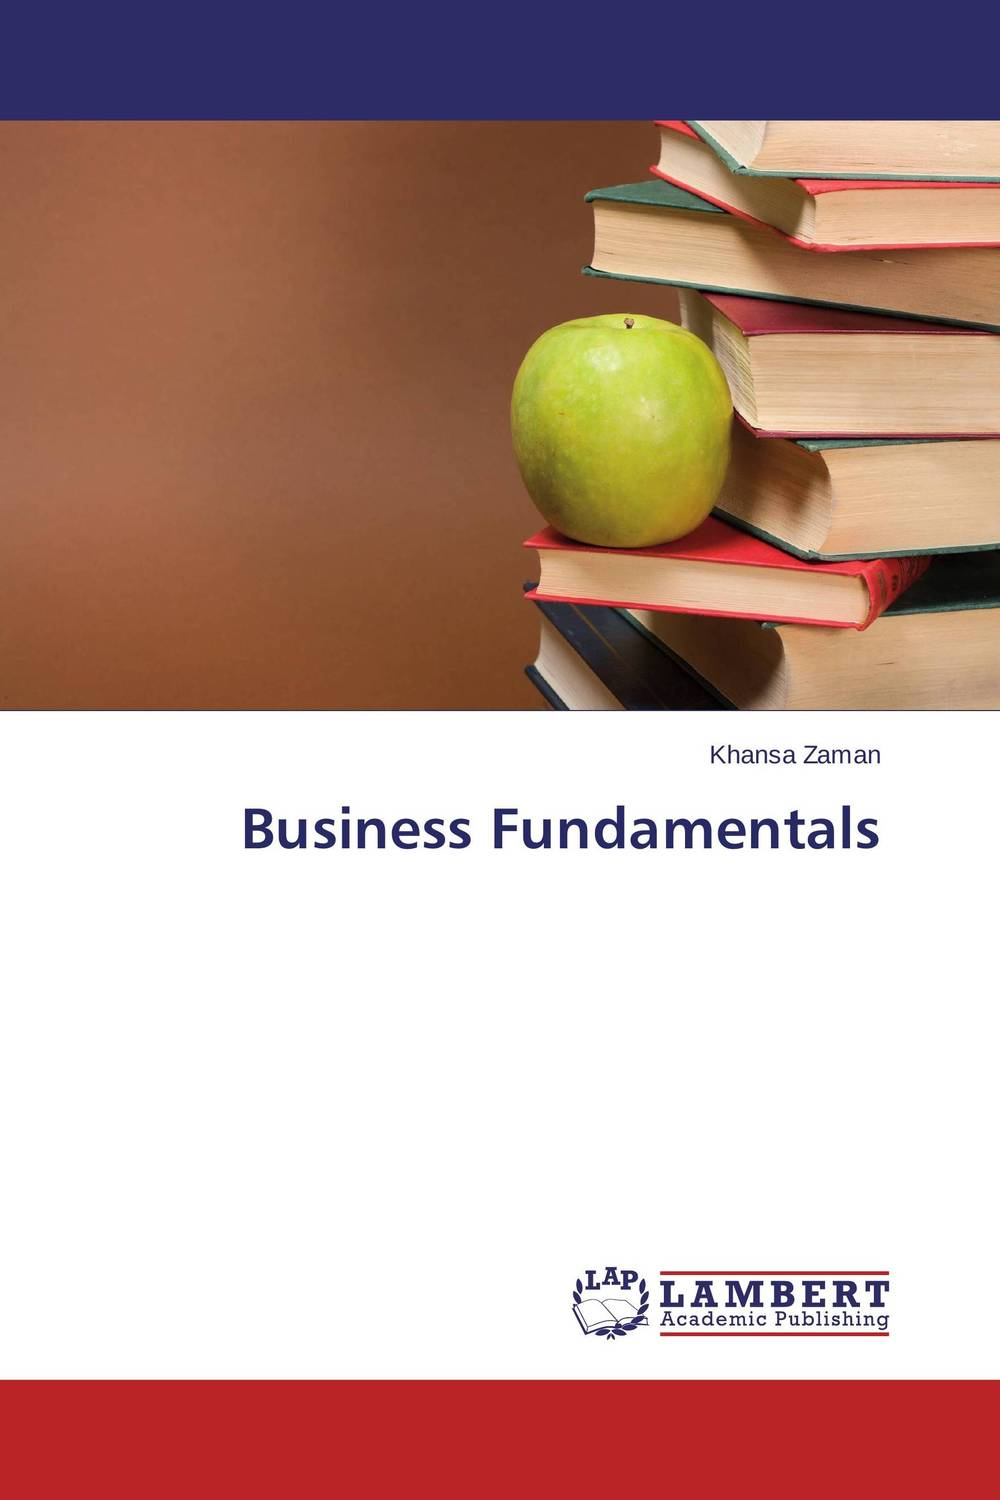 Business Fundamentals business fundamentals